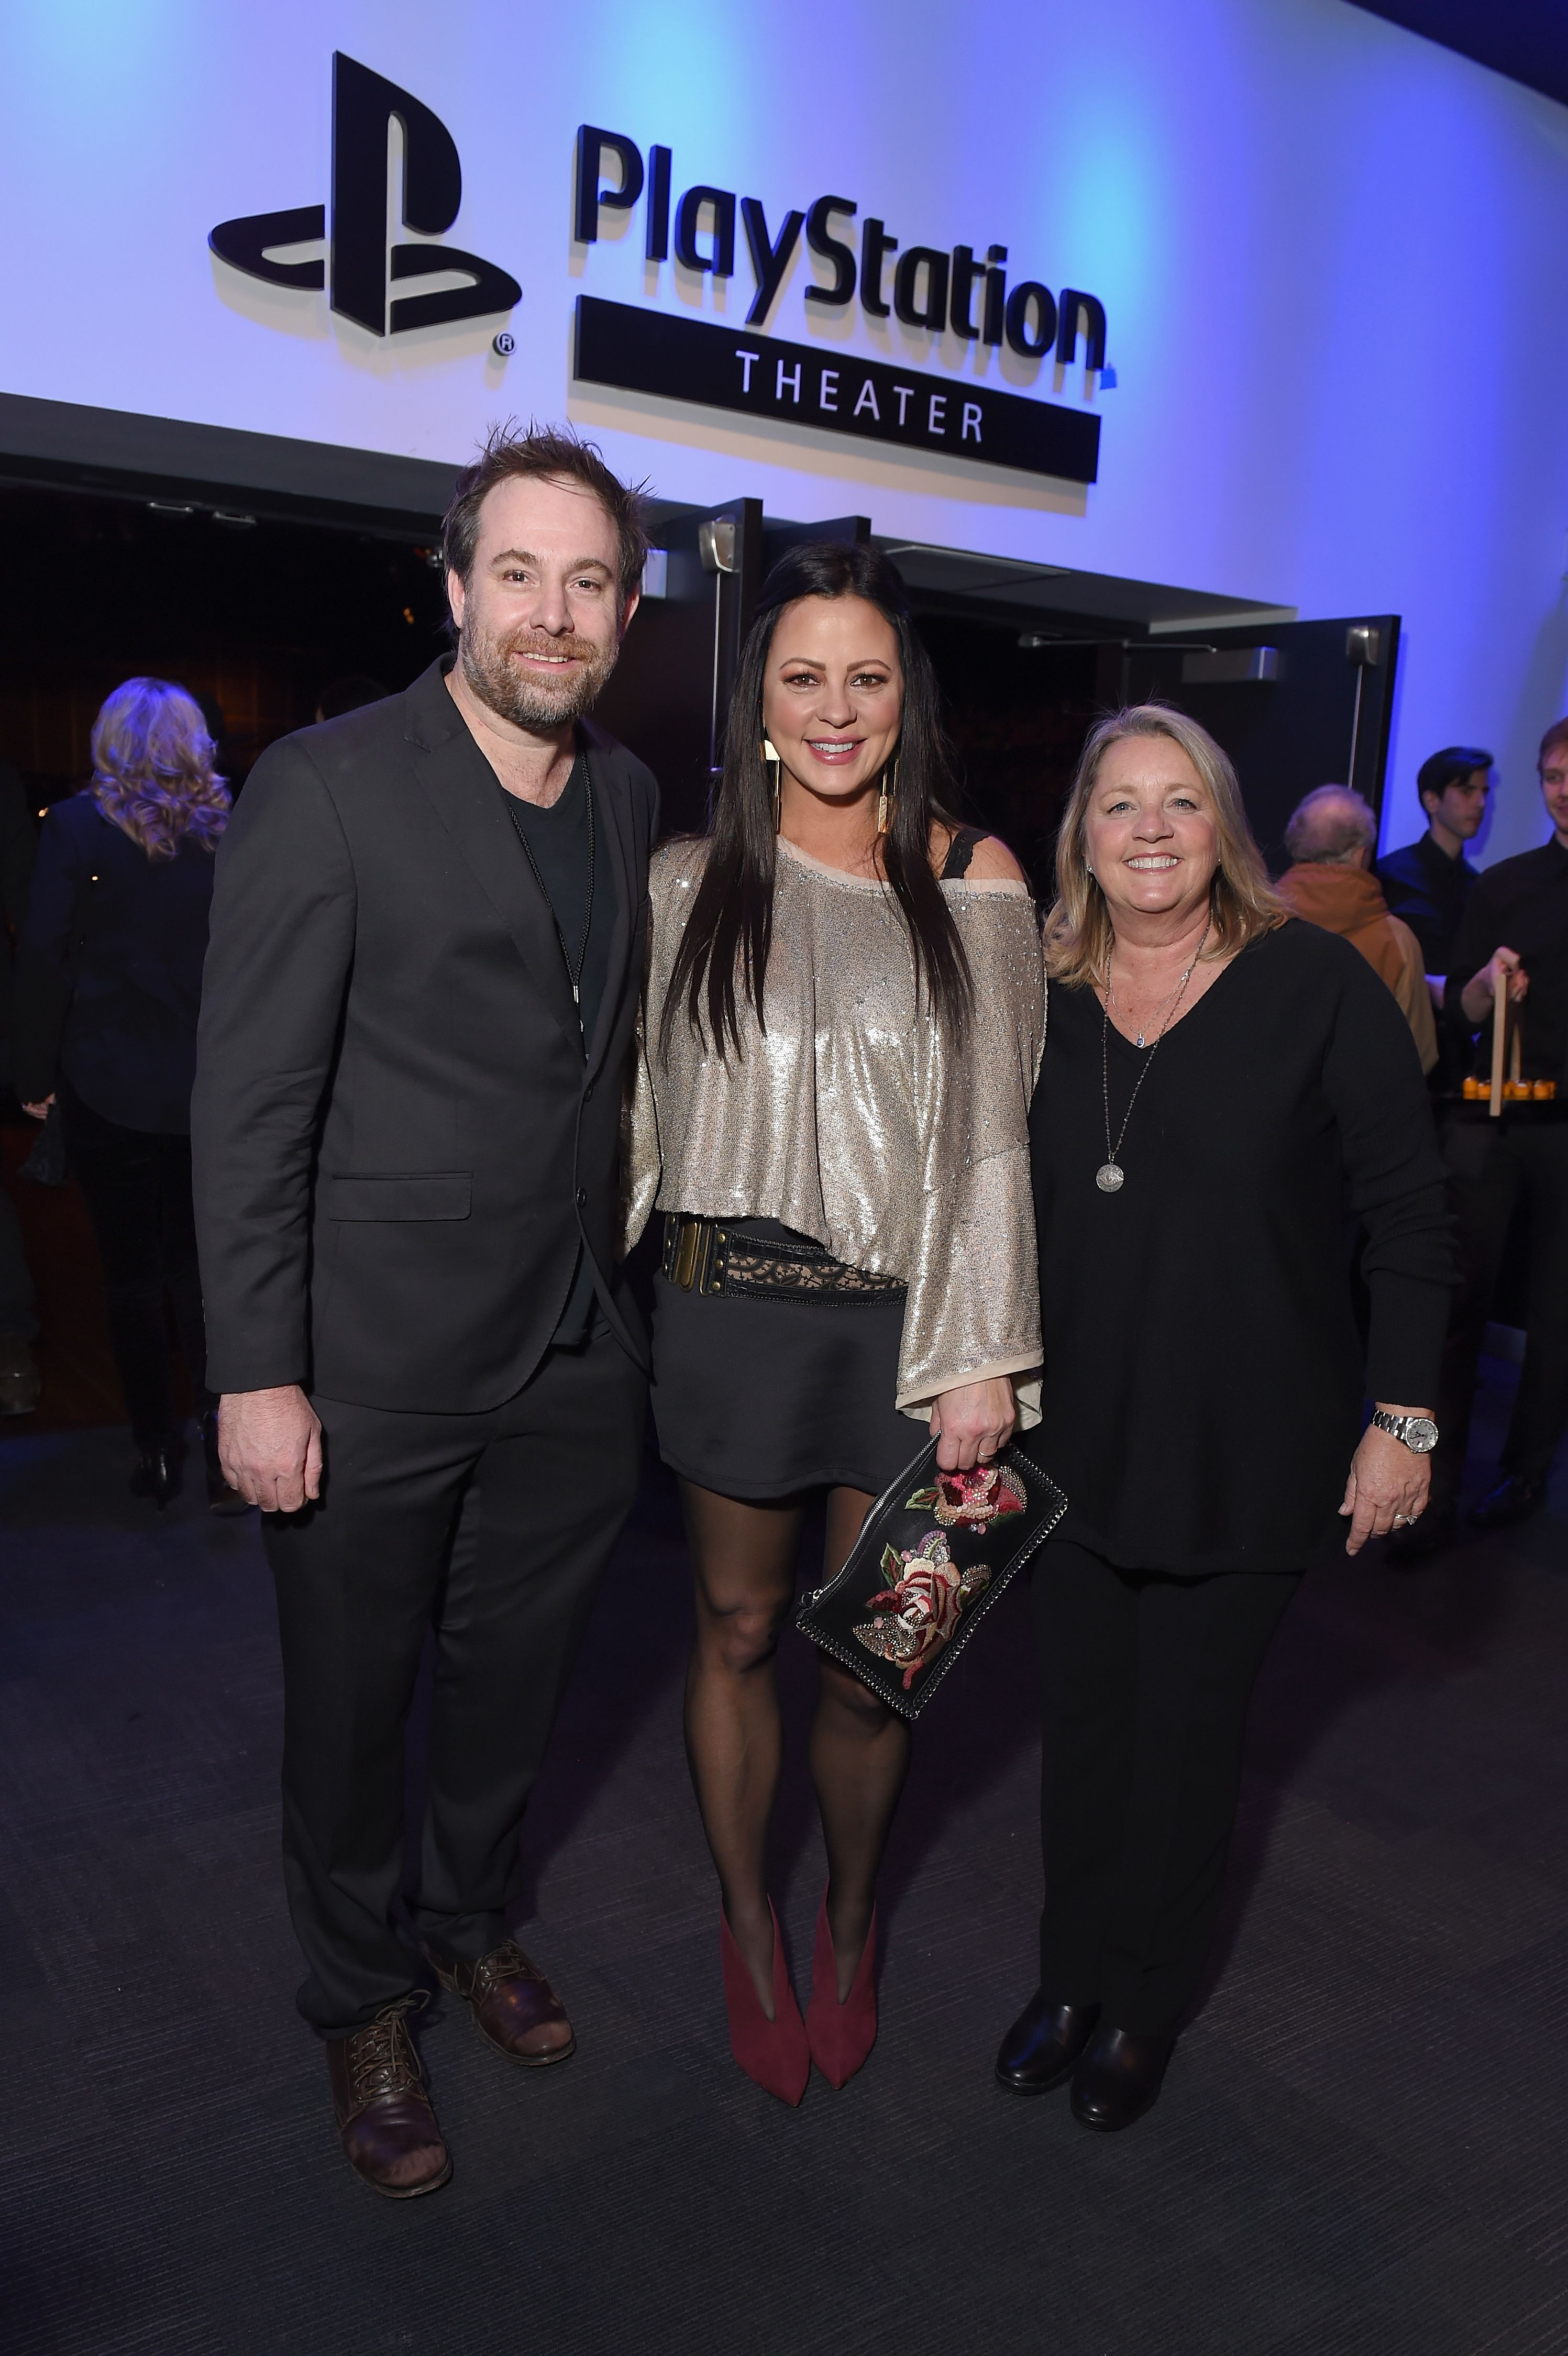 NEW YORK, NY - FEBRUARY 12: Songwriter Phil Barton, musician Sara Evans and songwriter and publisher Liz Rose attend the Country Music Hall of Fame and Museum's 'All for the Hall' Benefit on February 13, 2018 in New York City. (Photo by Michael Loccisano/Getty Images for Country Music Hall Of Fame)